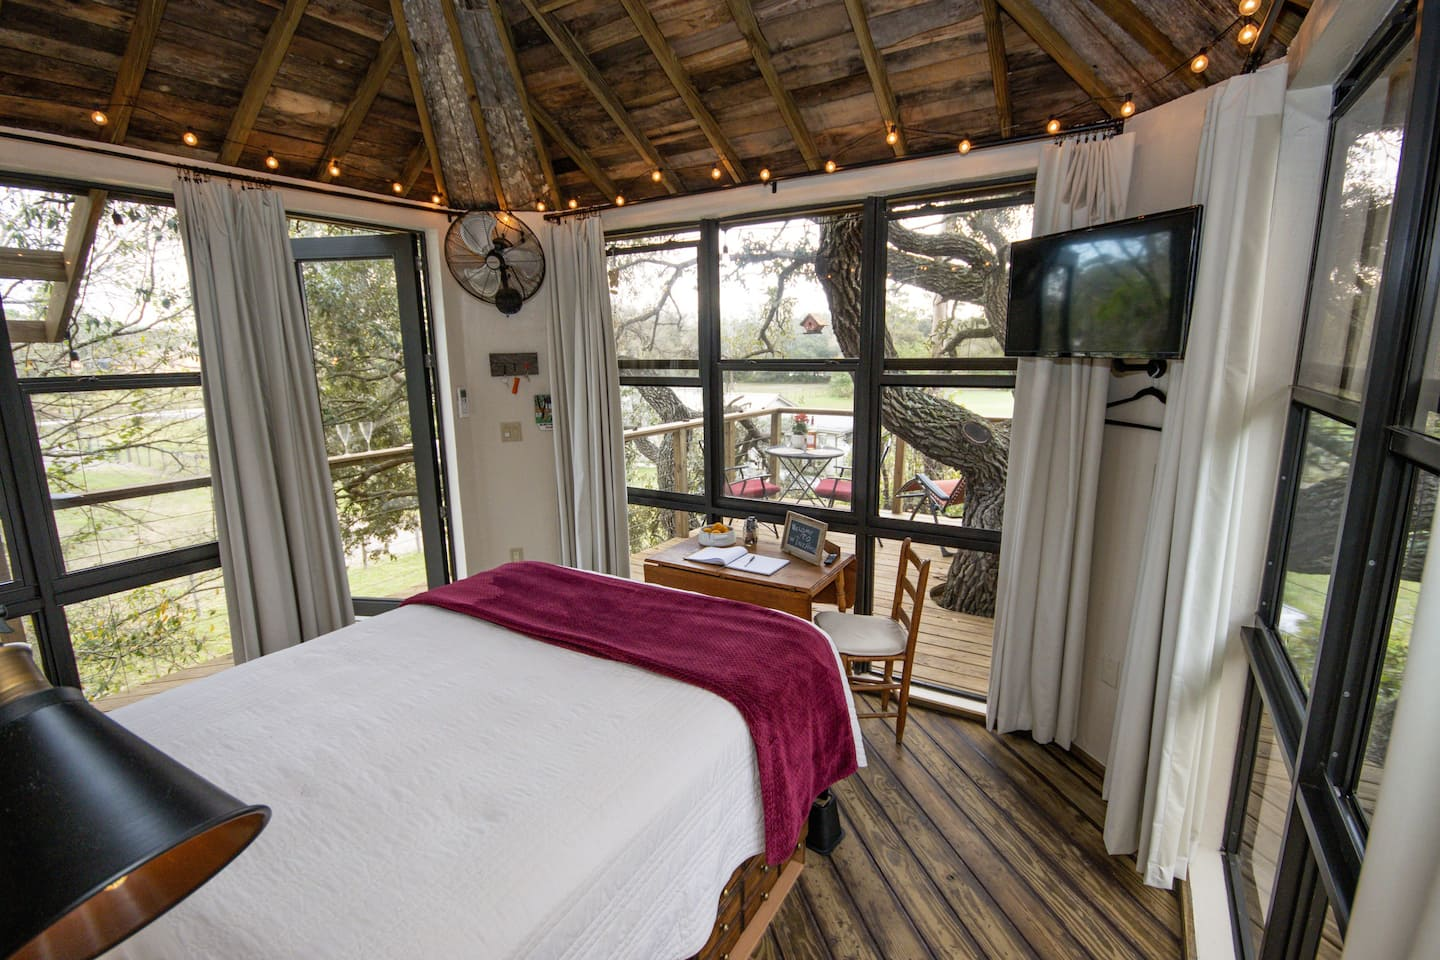 Cool Airbnb Treehouse Rental in Florida